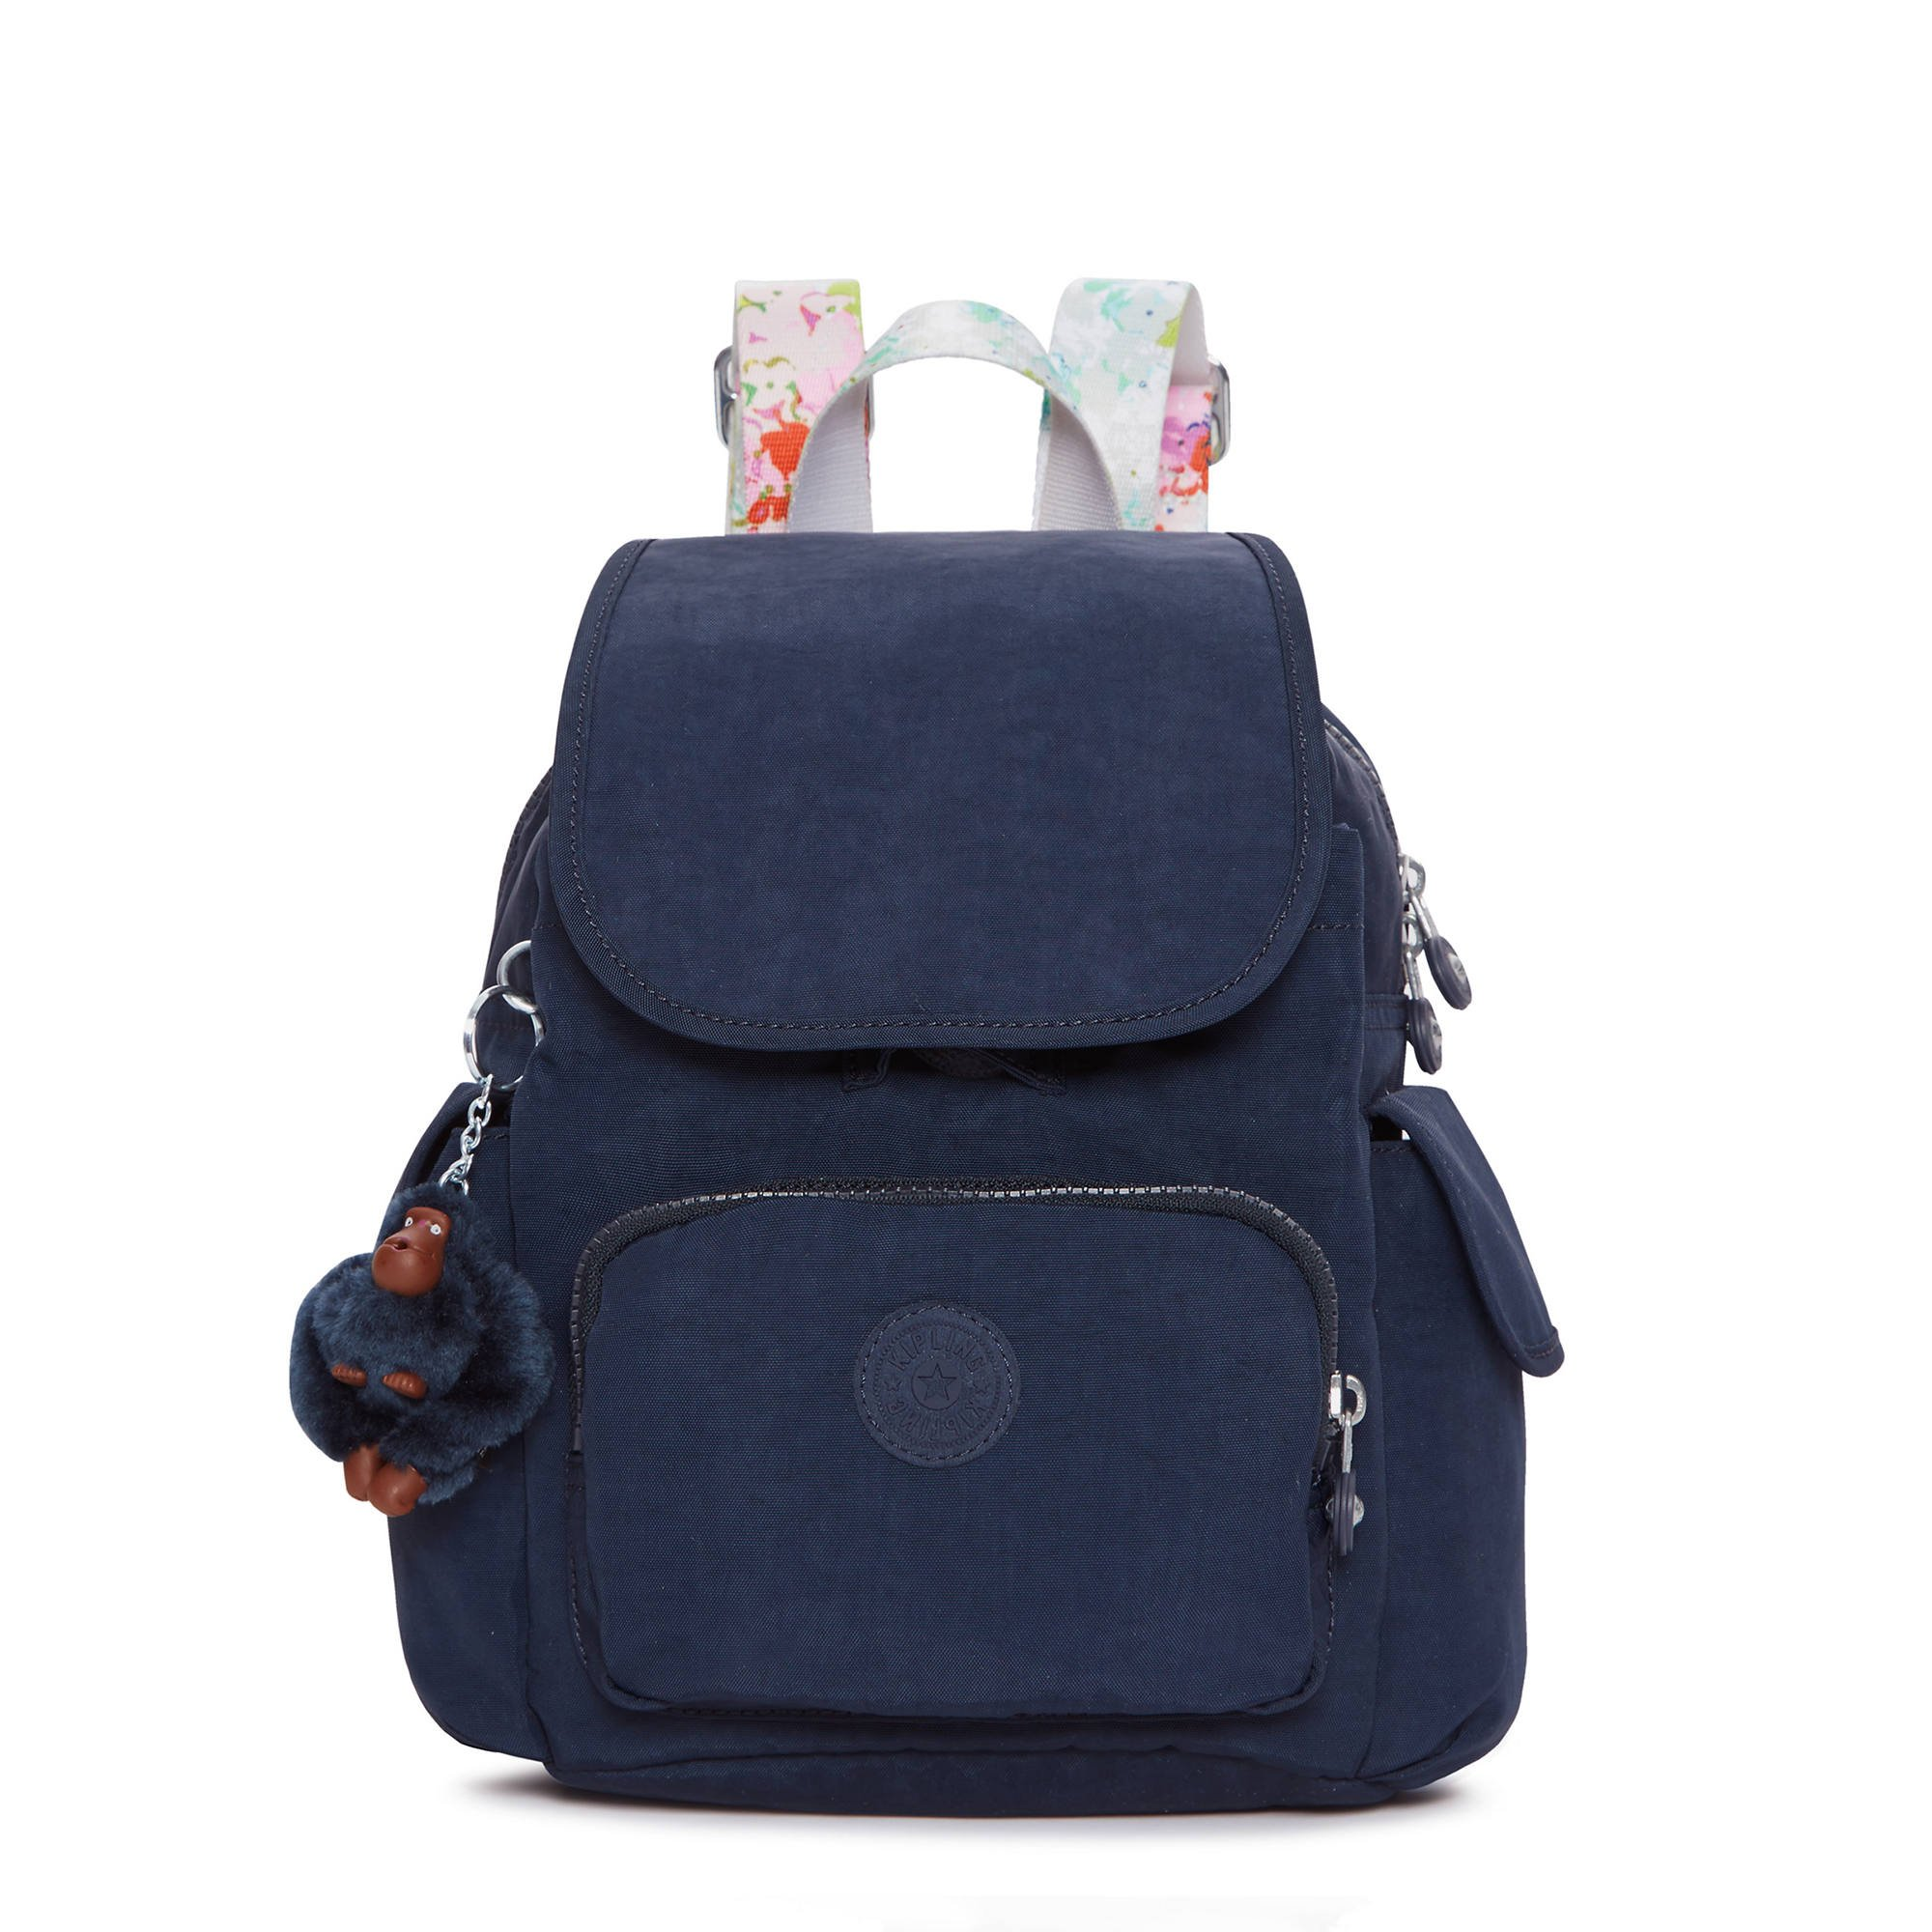 Kipling Women's Ravier Extra Small Backpack One Size Blue